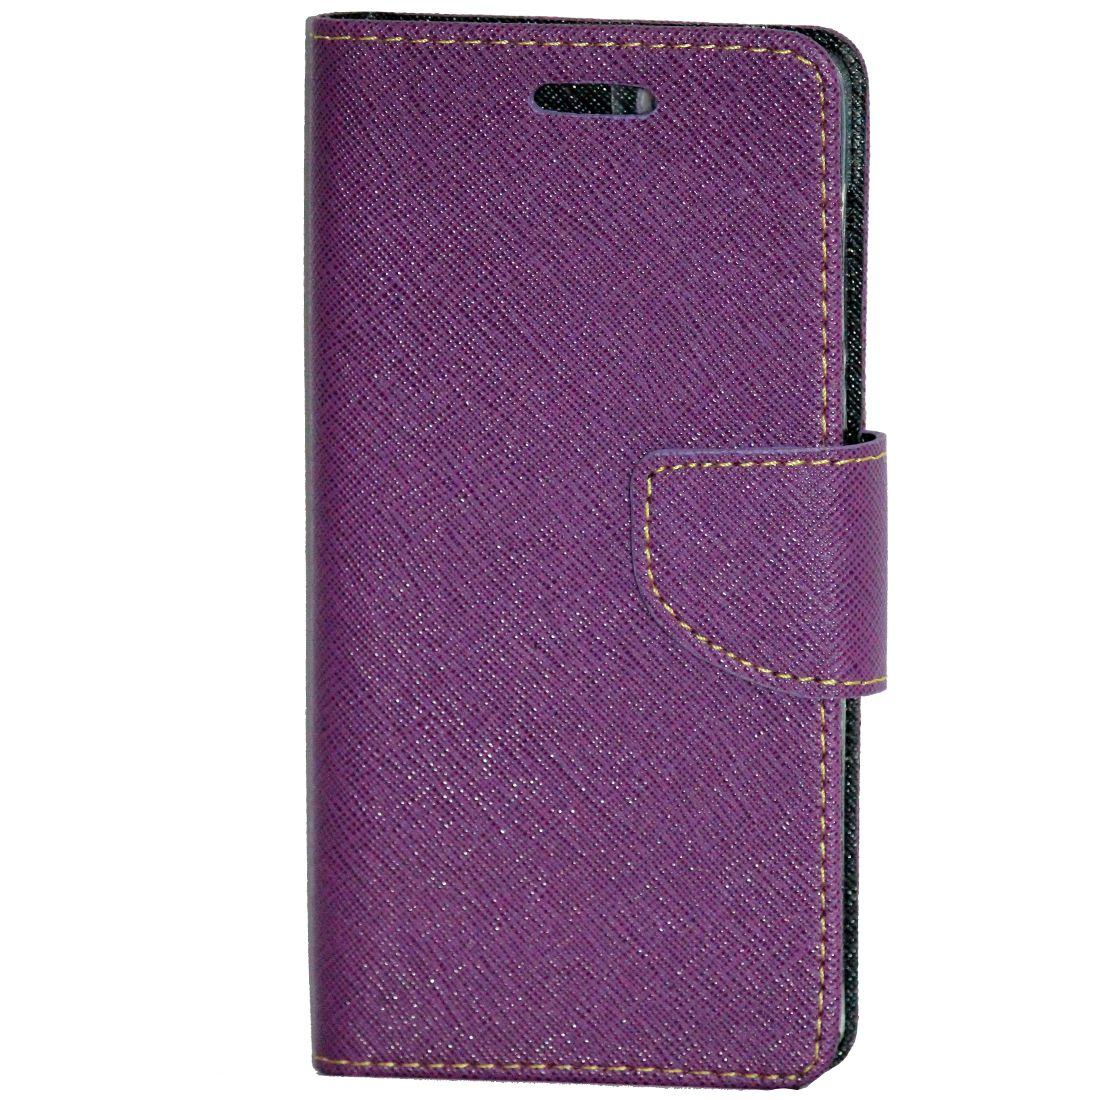 new concept 776a5 9f2fb Xolo Era 4G Flip Cover by Gizmofreaks - Purple